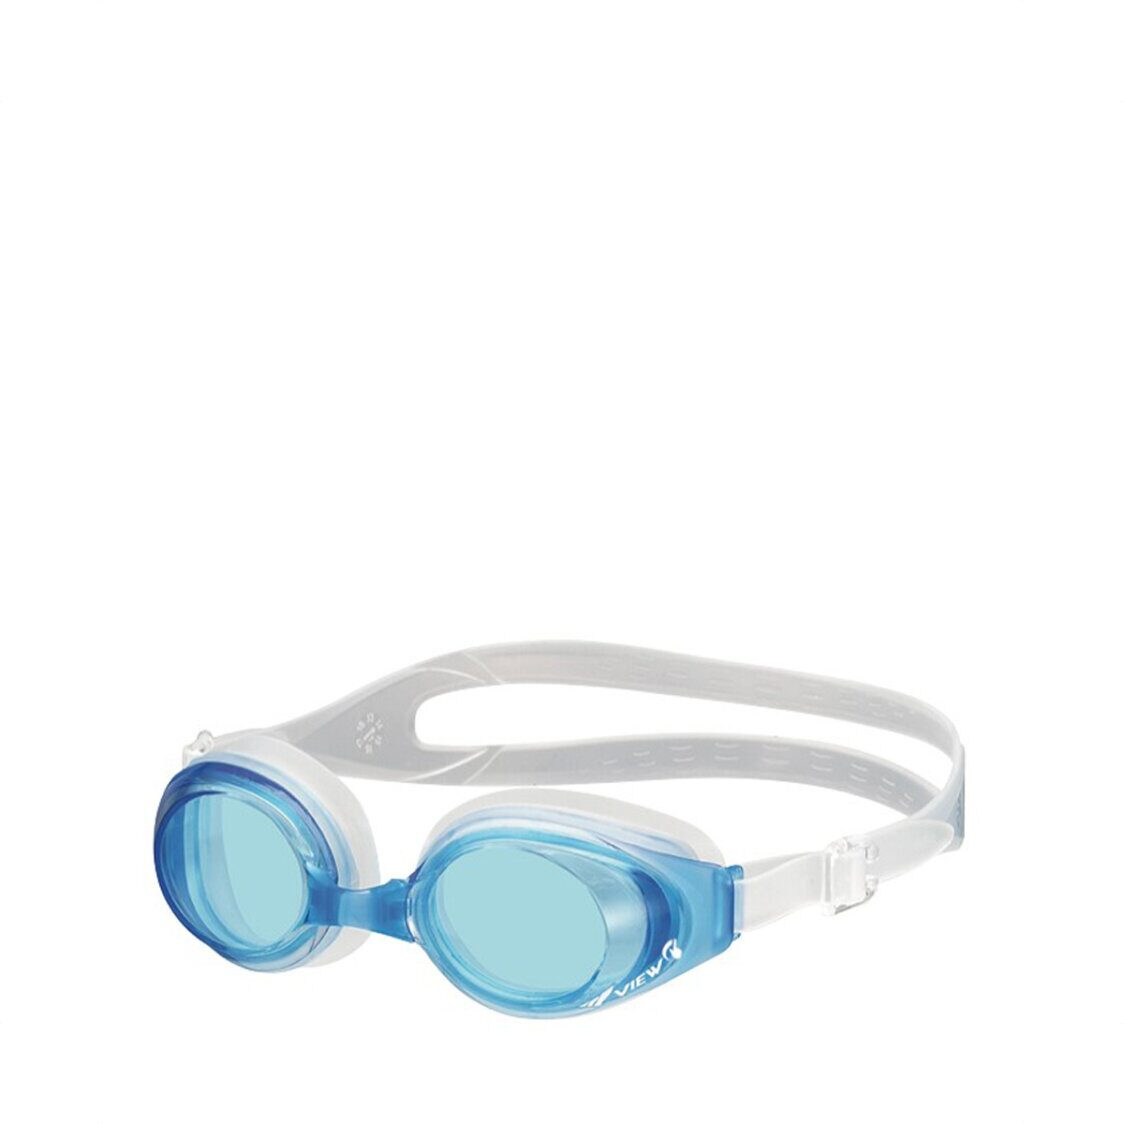 View Are Goggle Clear Blue AAV630SASAMCLEAR